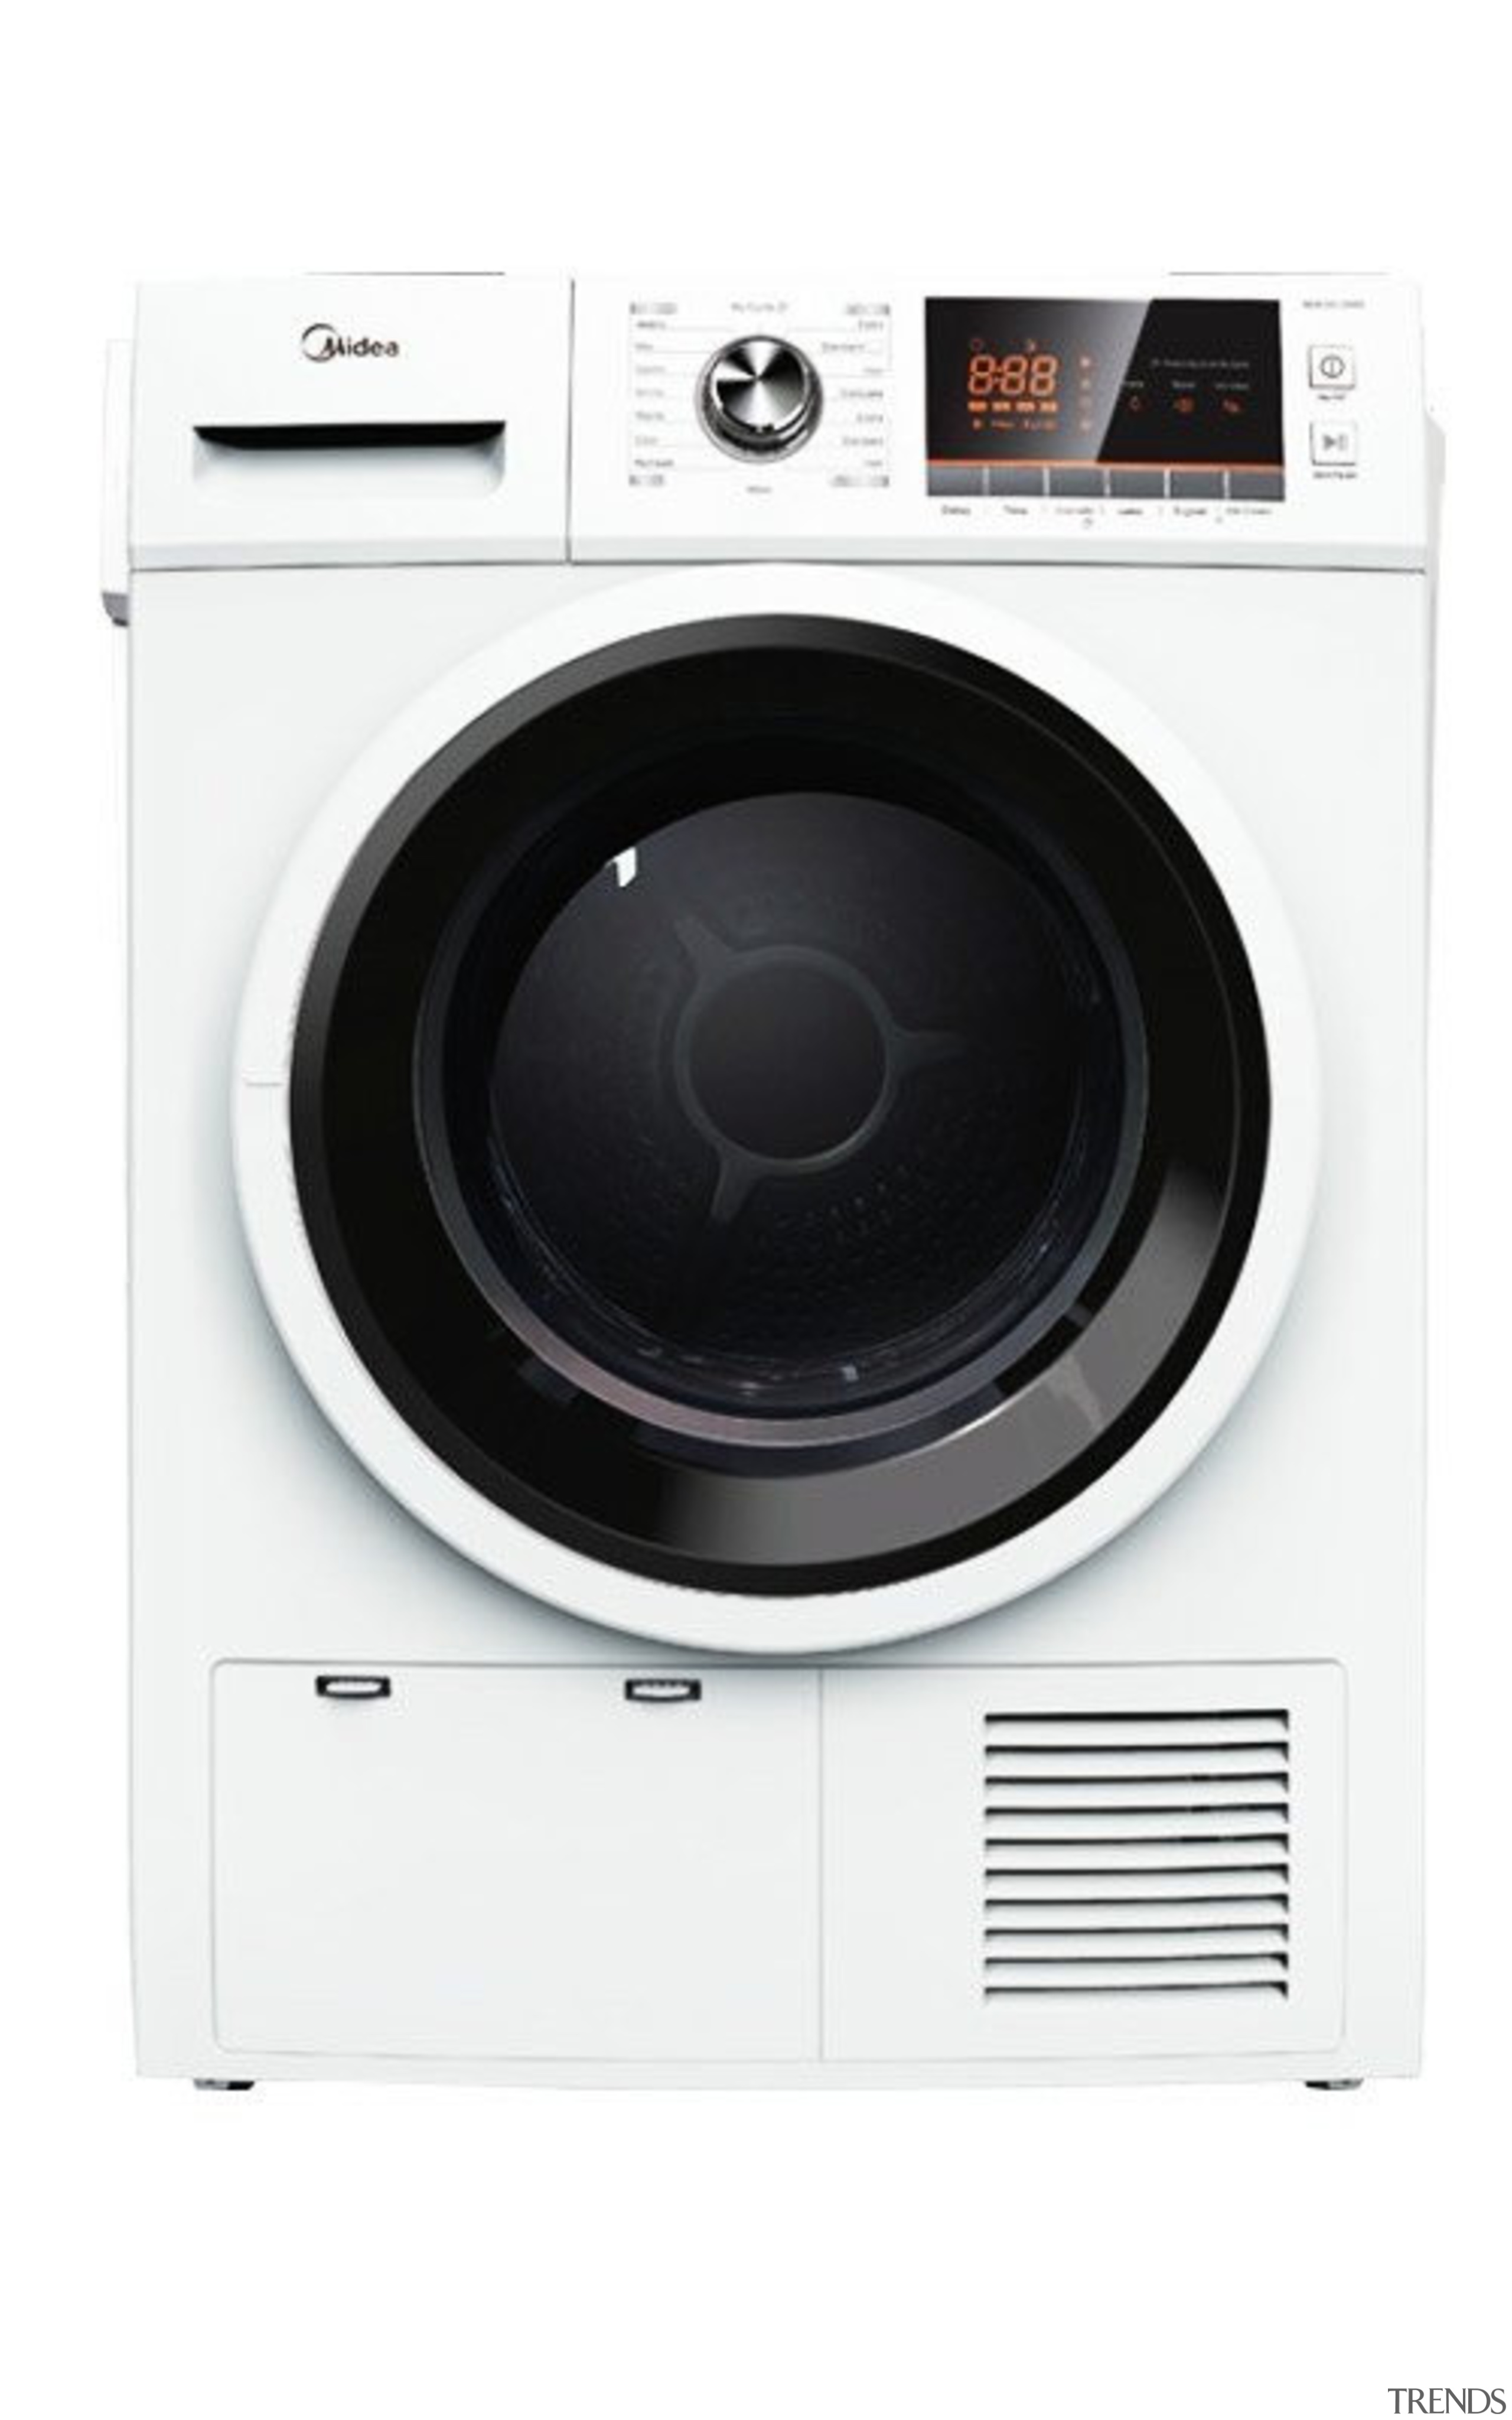 7 Kg Condenser DryerCAPACITY: 7Kg15 Programs, Child Lock, clothes dryer, home appliance, major appliance, product, washing machine, white